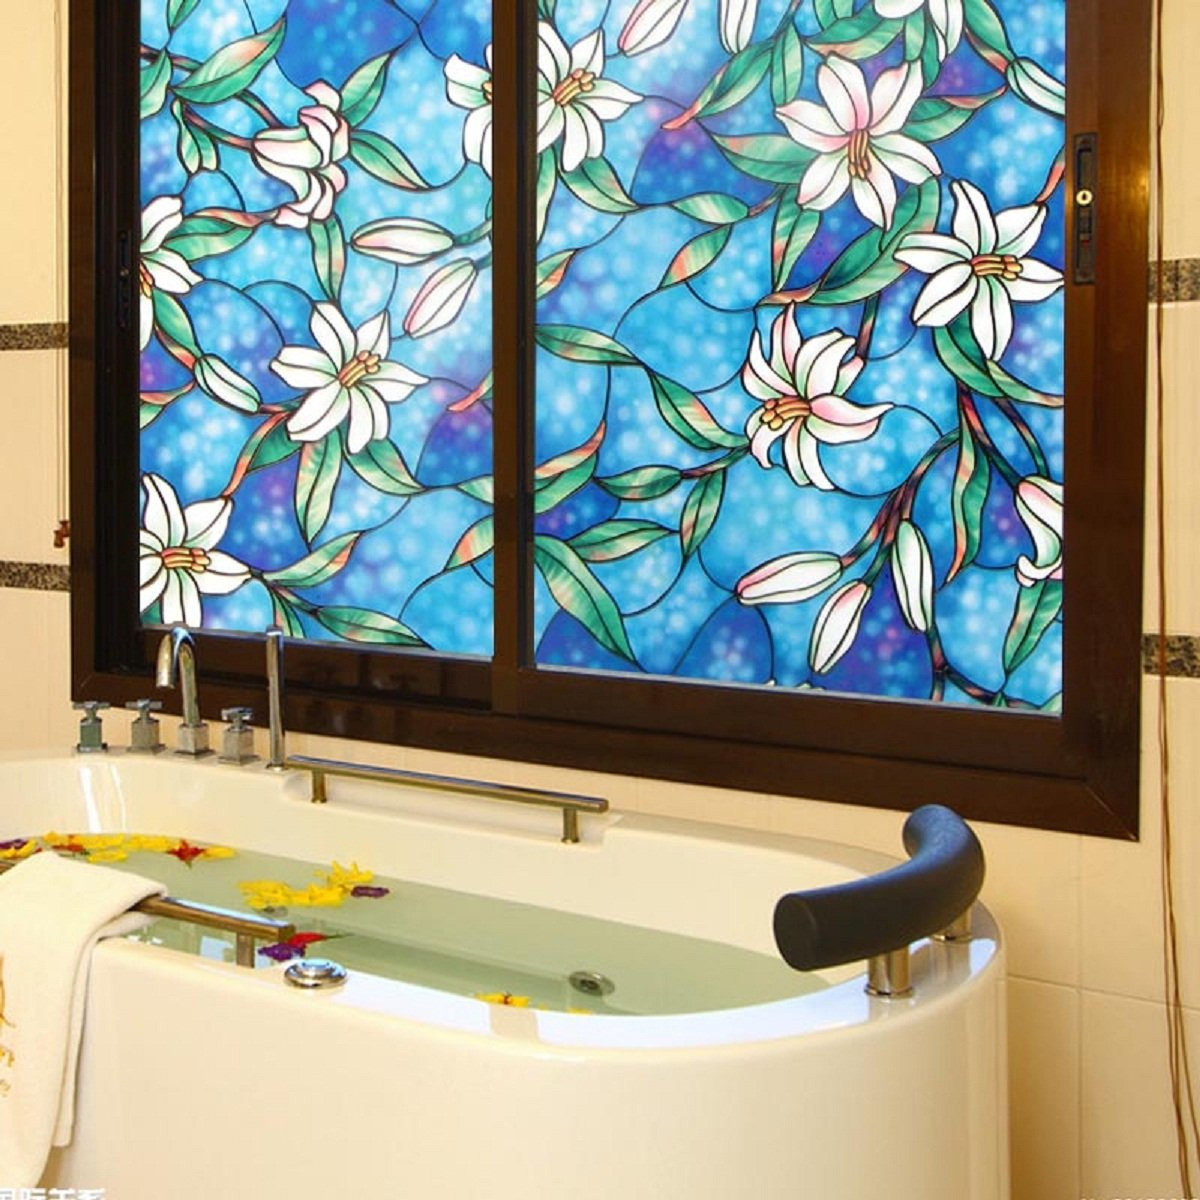 Viclover Stained Glass Window Film Non-Adhesive Static Vinyl Window Films Privacy Decorative Window Clings Color Flower Pattern Design 35.43 inches by 78.74 inches ZH-CS-VC